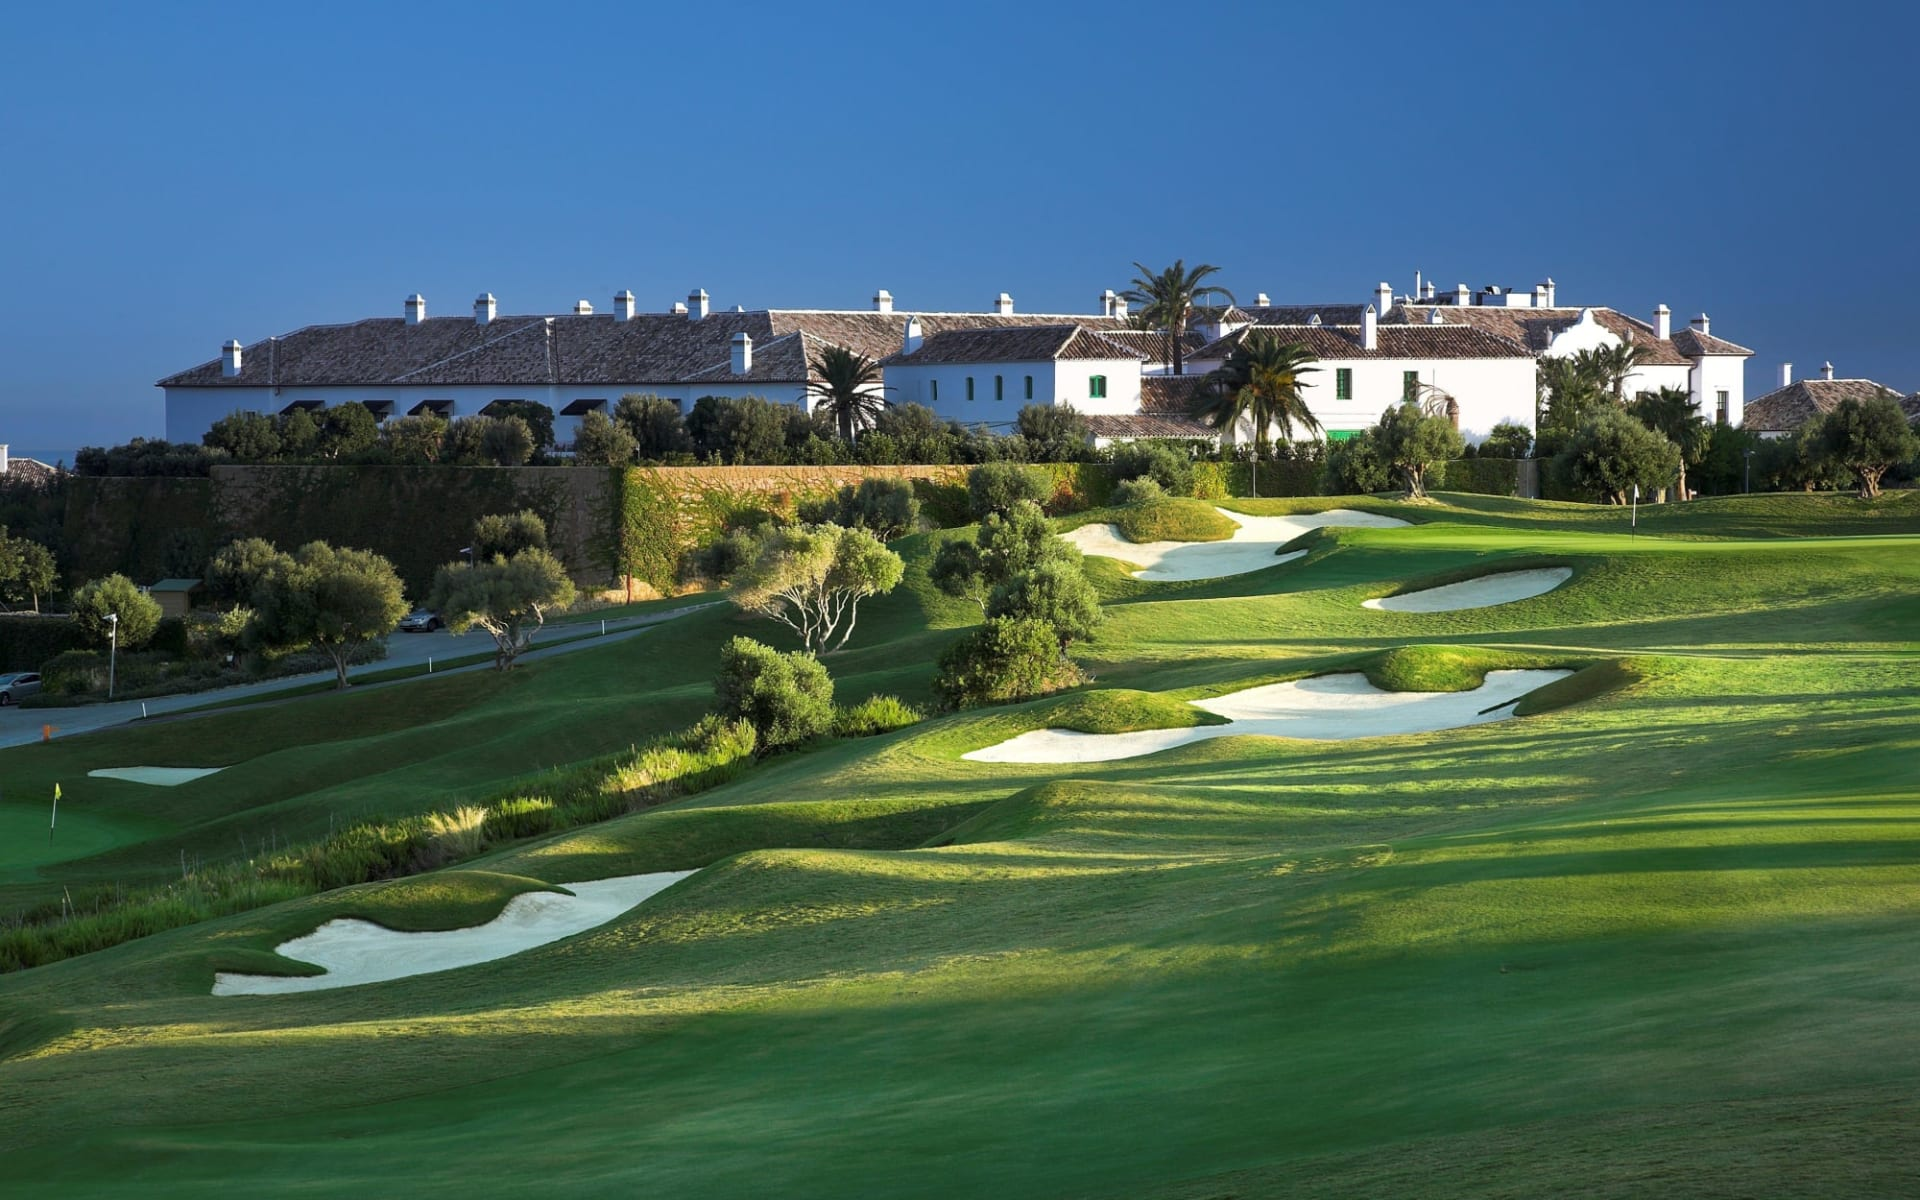 La Finca Cortesin in Marbella: La Finca Cortesin - Club de Golf Finca Cortesin